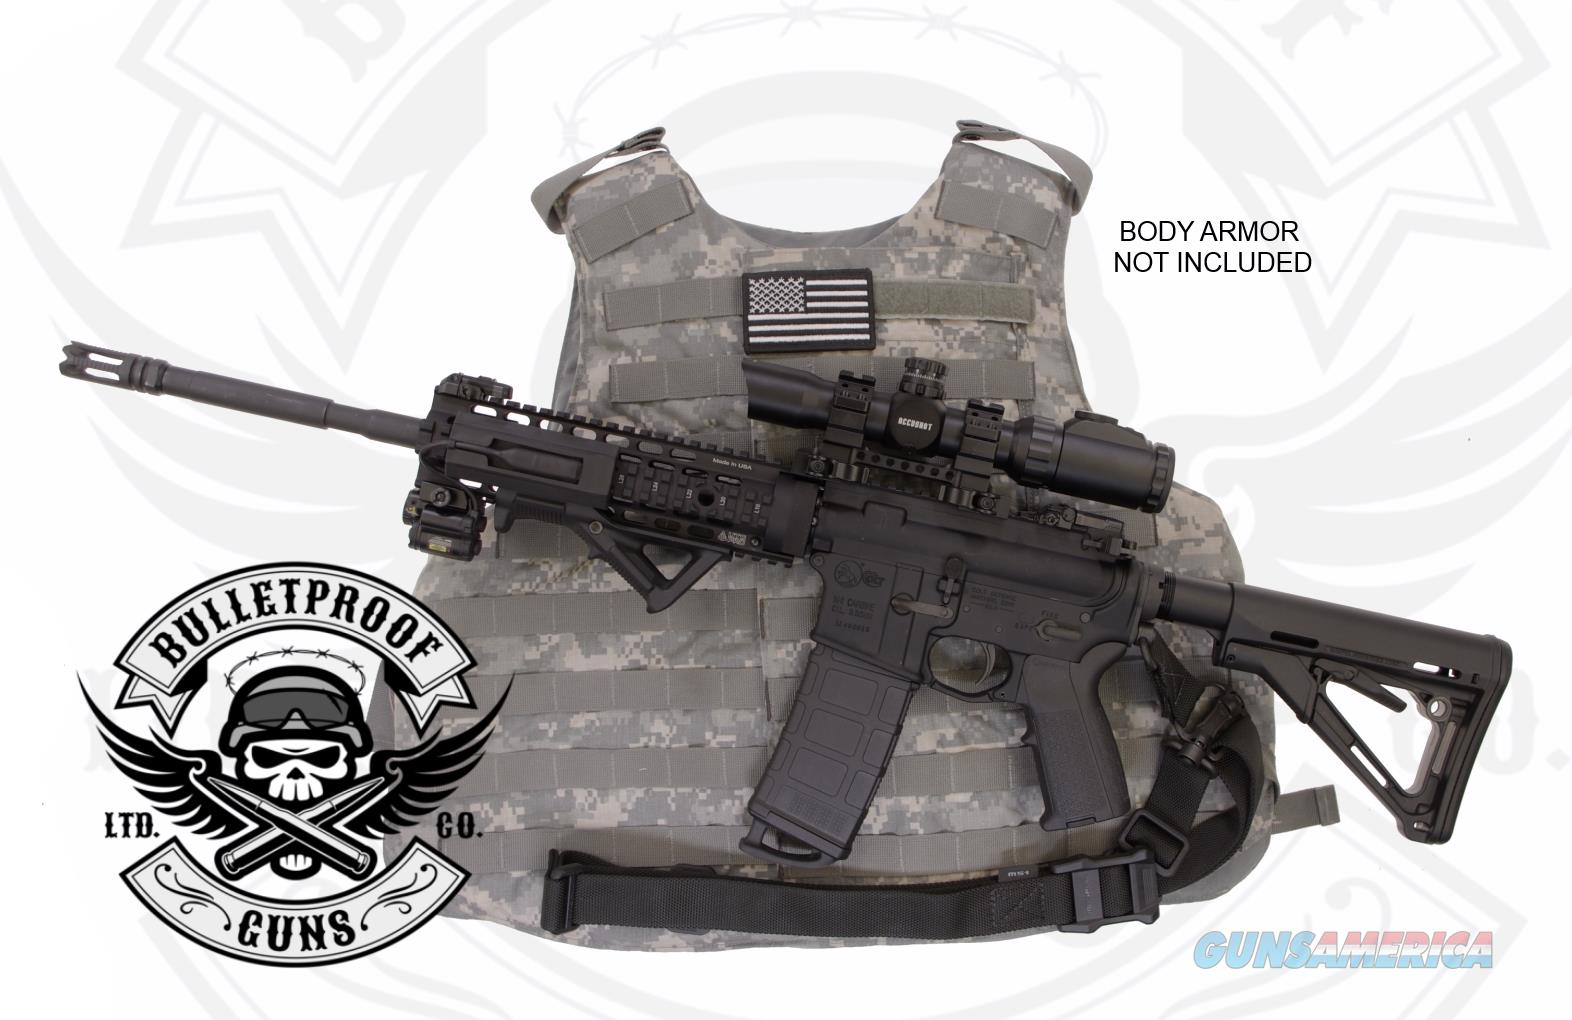 Bulletproof AR15: Colt LE6920 CLAYMORE-6CV  Guns > Rifles > Colt Military/Tactical Rifles